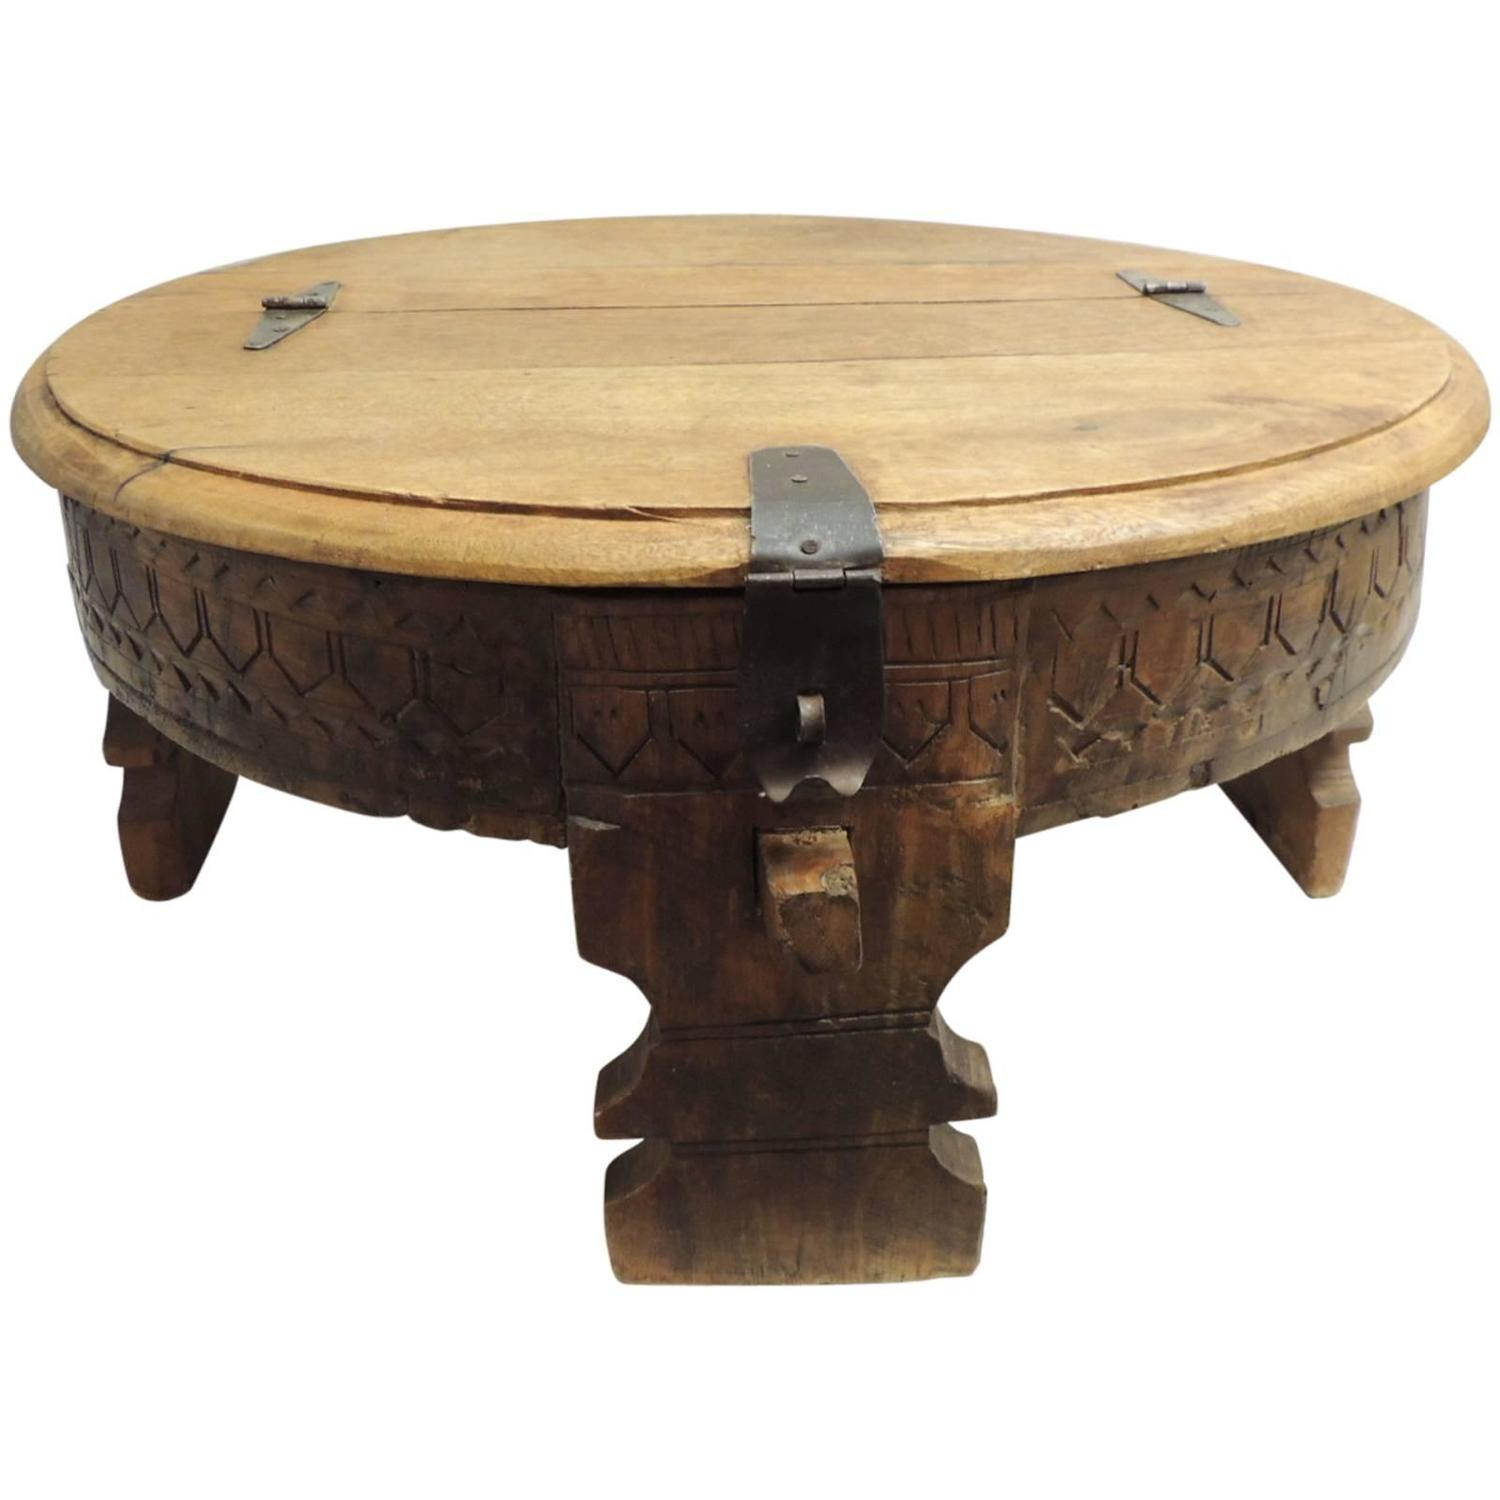 Moroccan Carved Round Coffee Table at 1stdibs